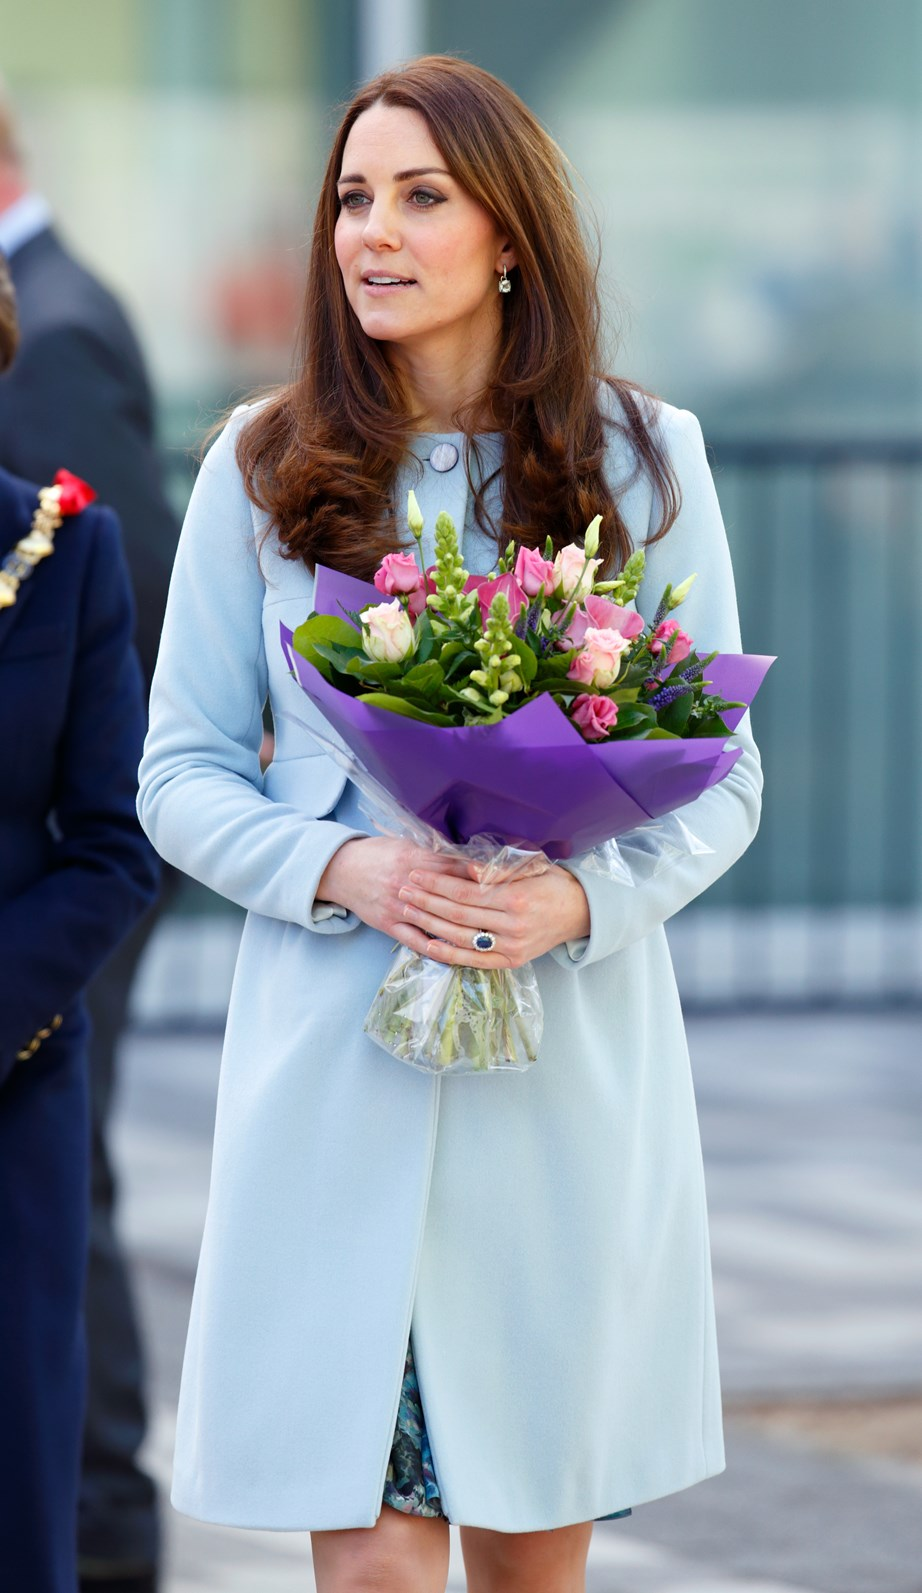 The Duchess of Cambridge stepped out in this beautiful blue cashmere Seraphine coatdress for the opening of the new Kensington Leisure Centre in London in 2015.